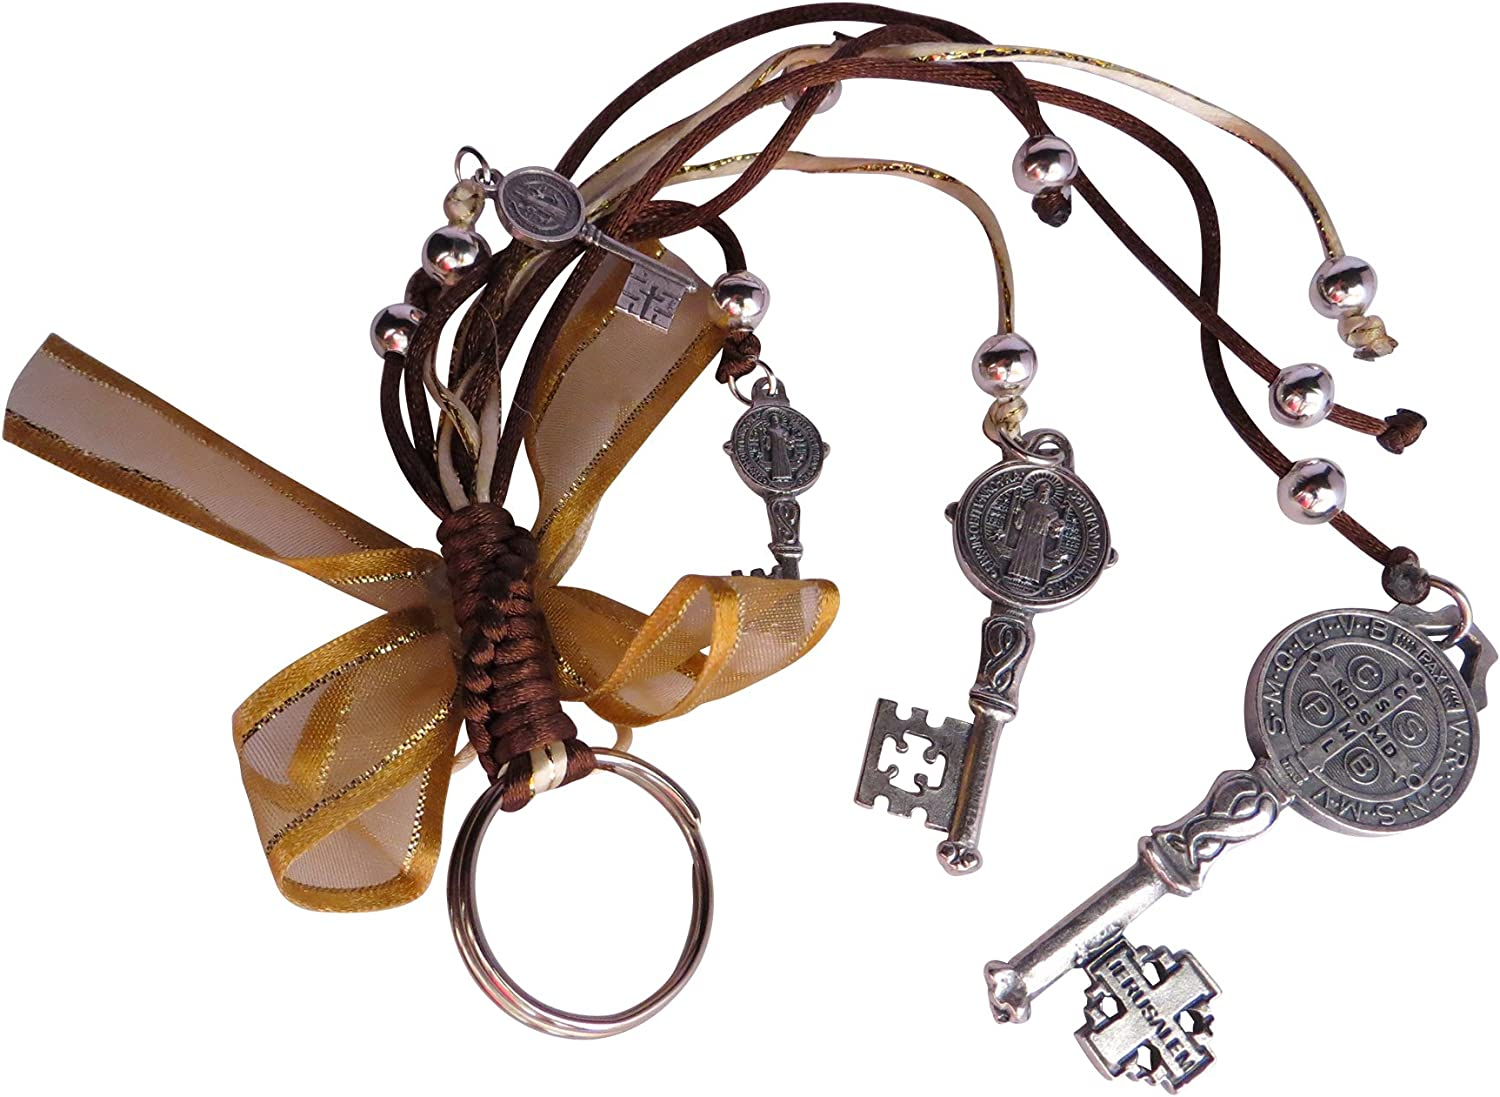 Angelitos de Mexico Saint Benedict Keys Blessing Protection for Home, Car or Purse